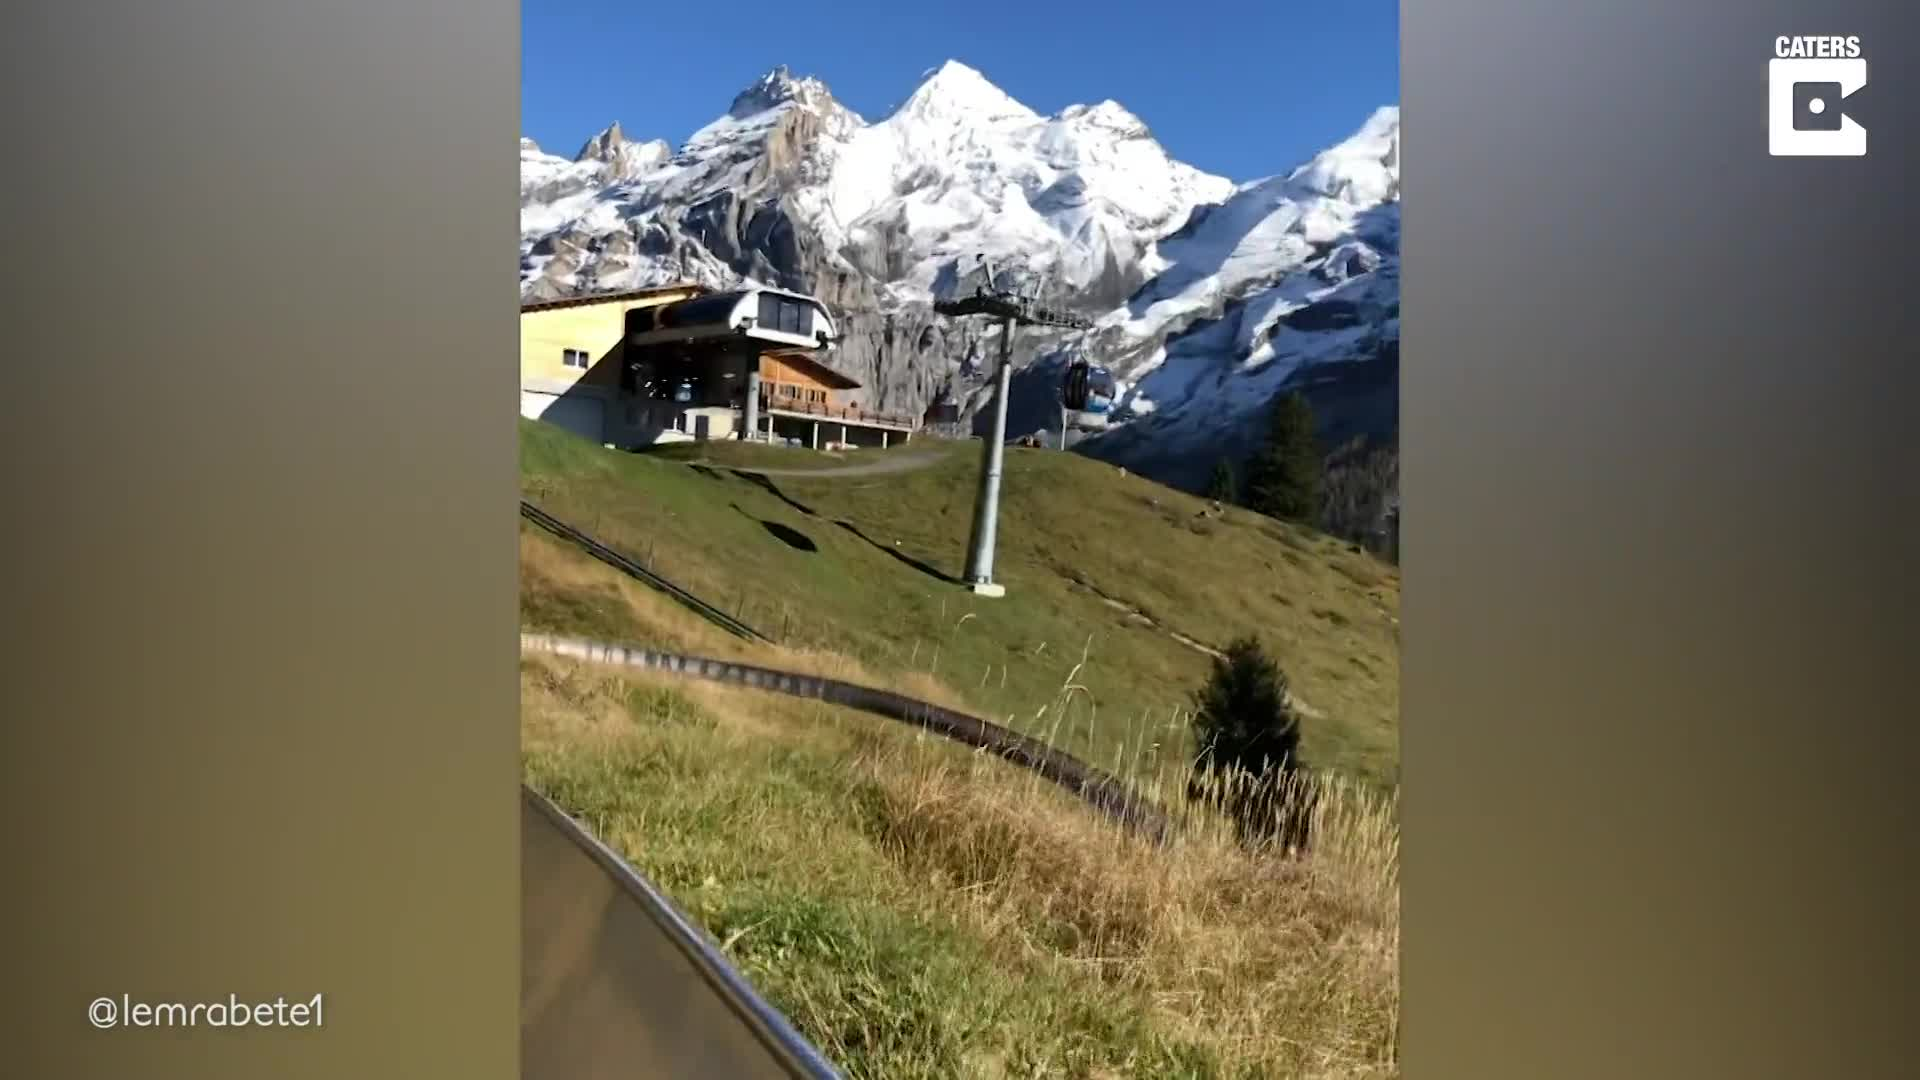 SCENIC SLIDE LETS RIDERS VIEW STUNNING SWISS MOUNTAINS AND LAKE